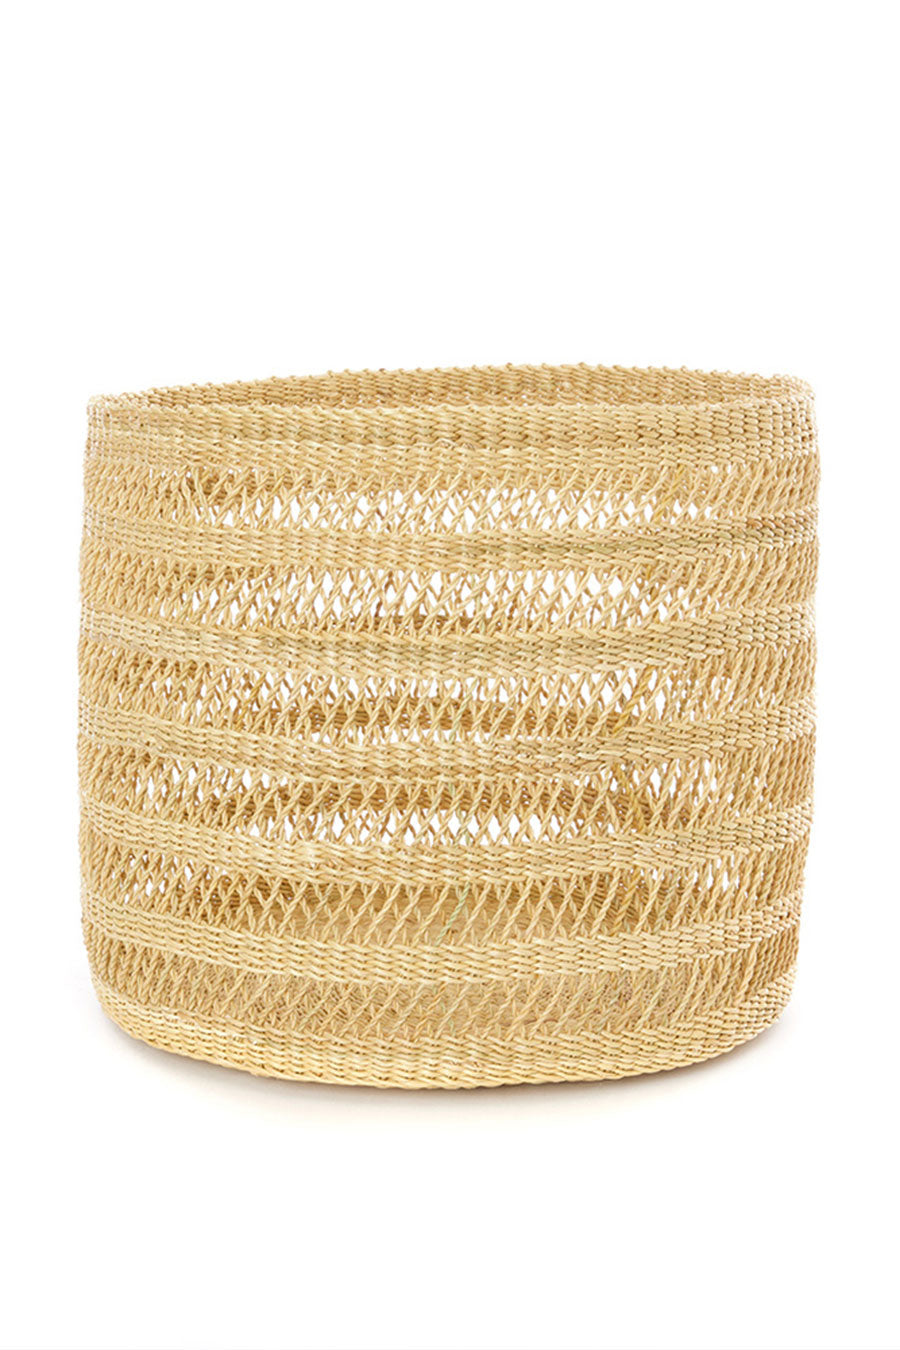 Stevie Basket / African Handmade Lace Weave Accent Basket